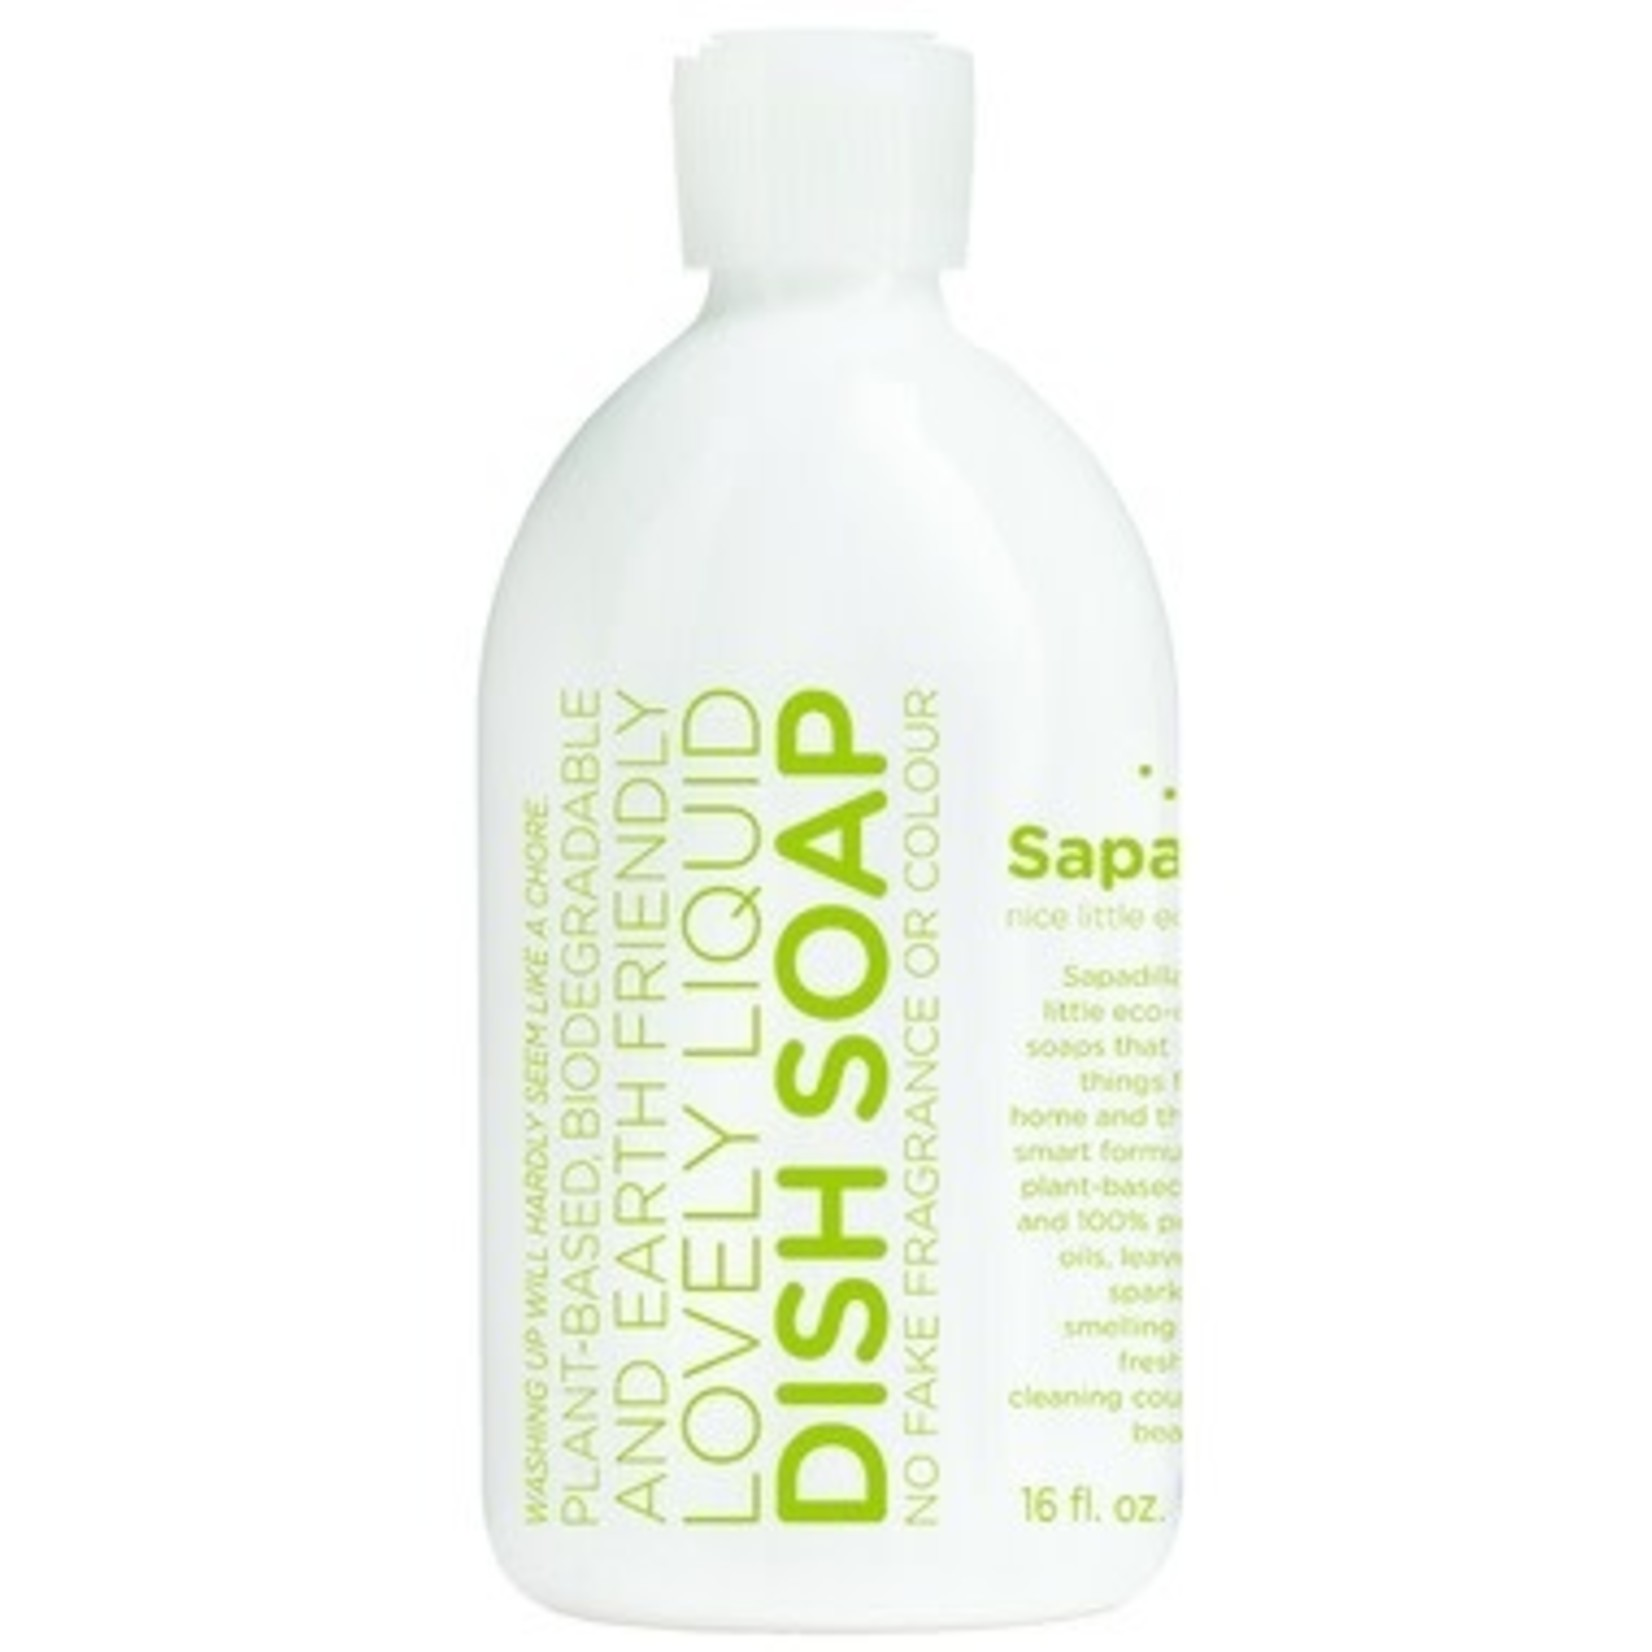 SAPADILLA Rosemary + Peppermint Dish Soap